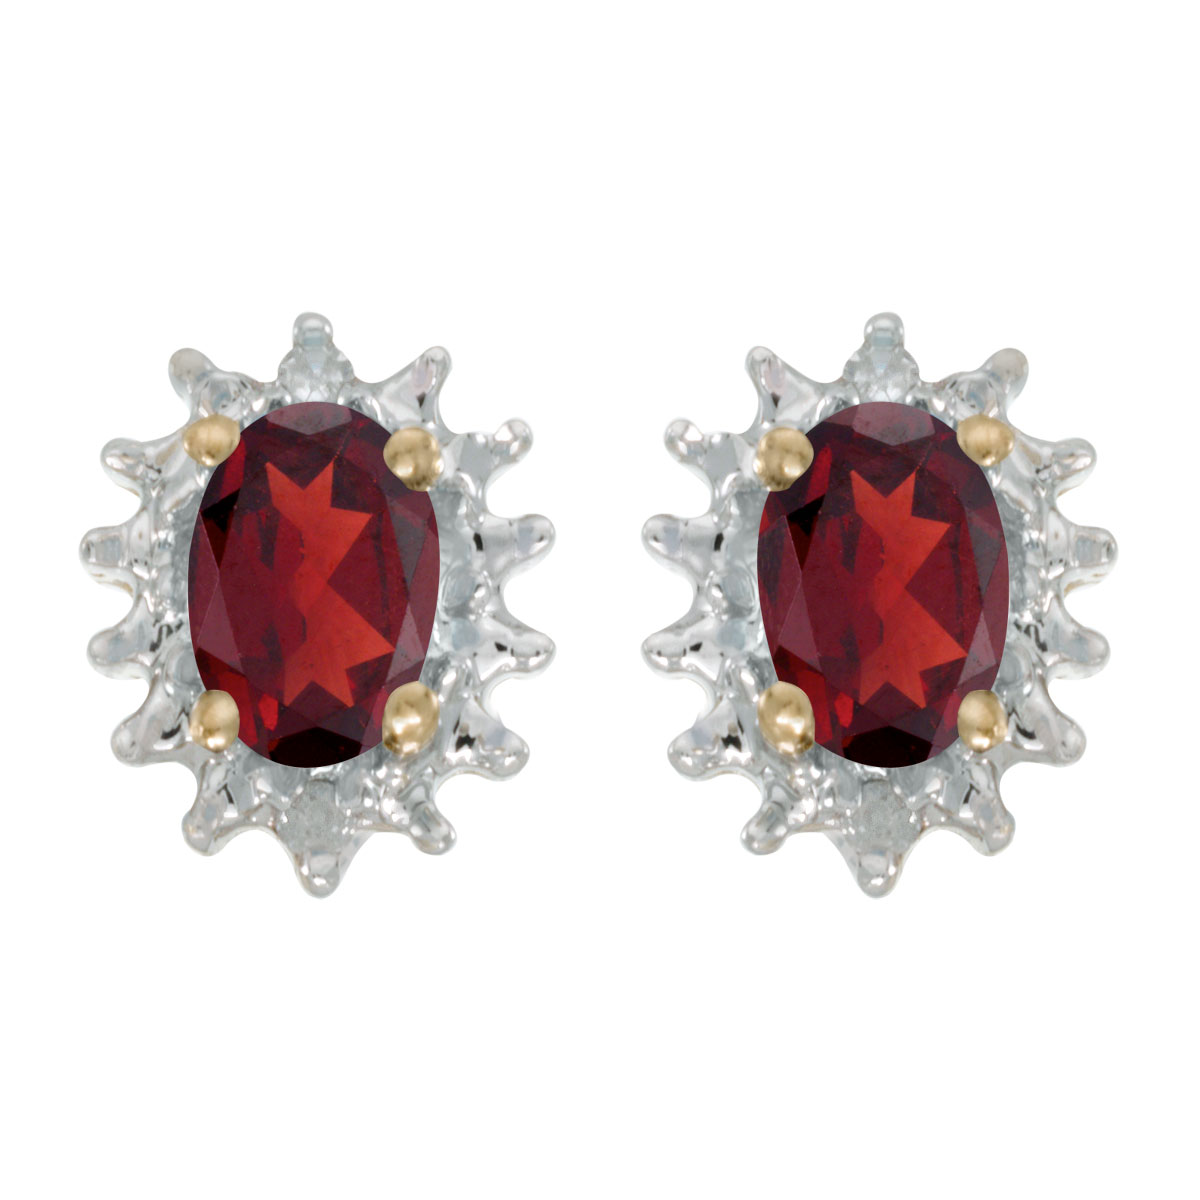 These 14k yellow gold oval garnet and diamond earrings feature 6x4 mm genuine natural garnets wit...